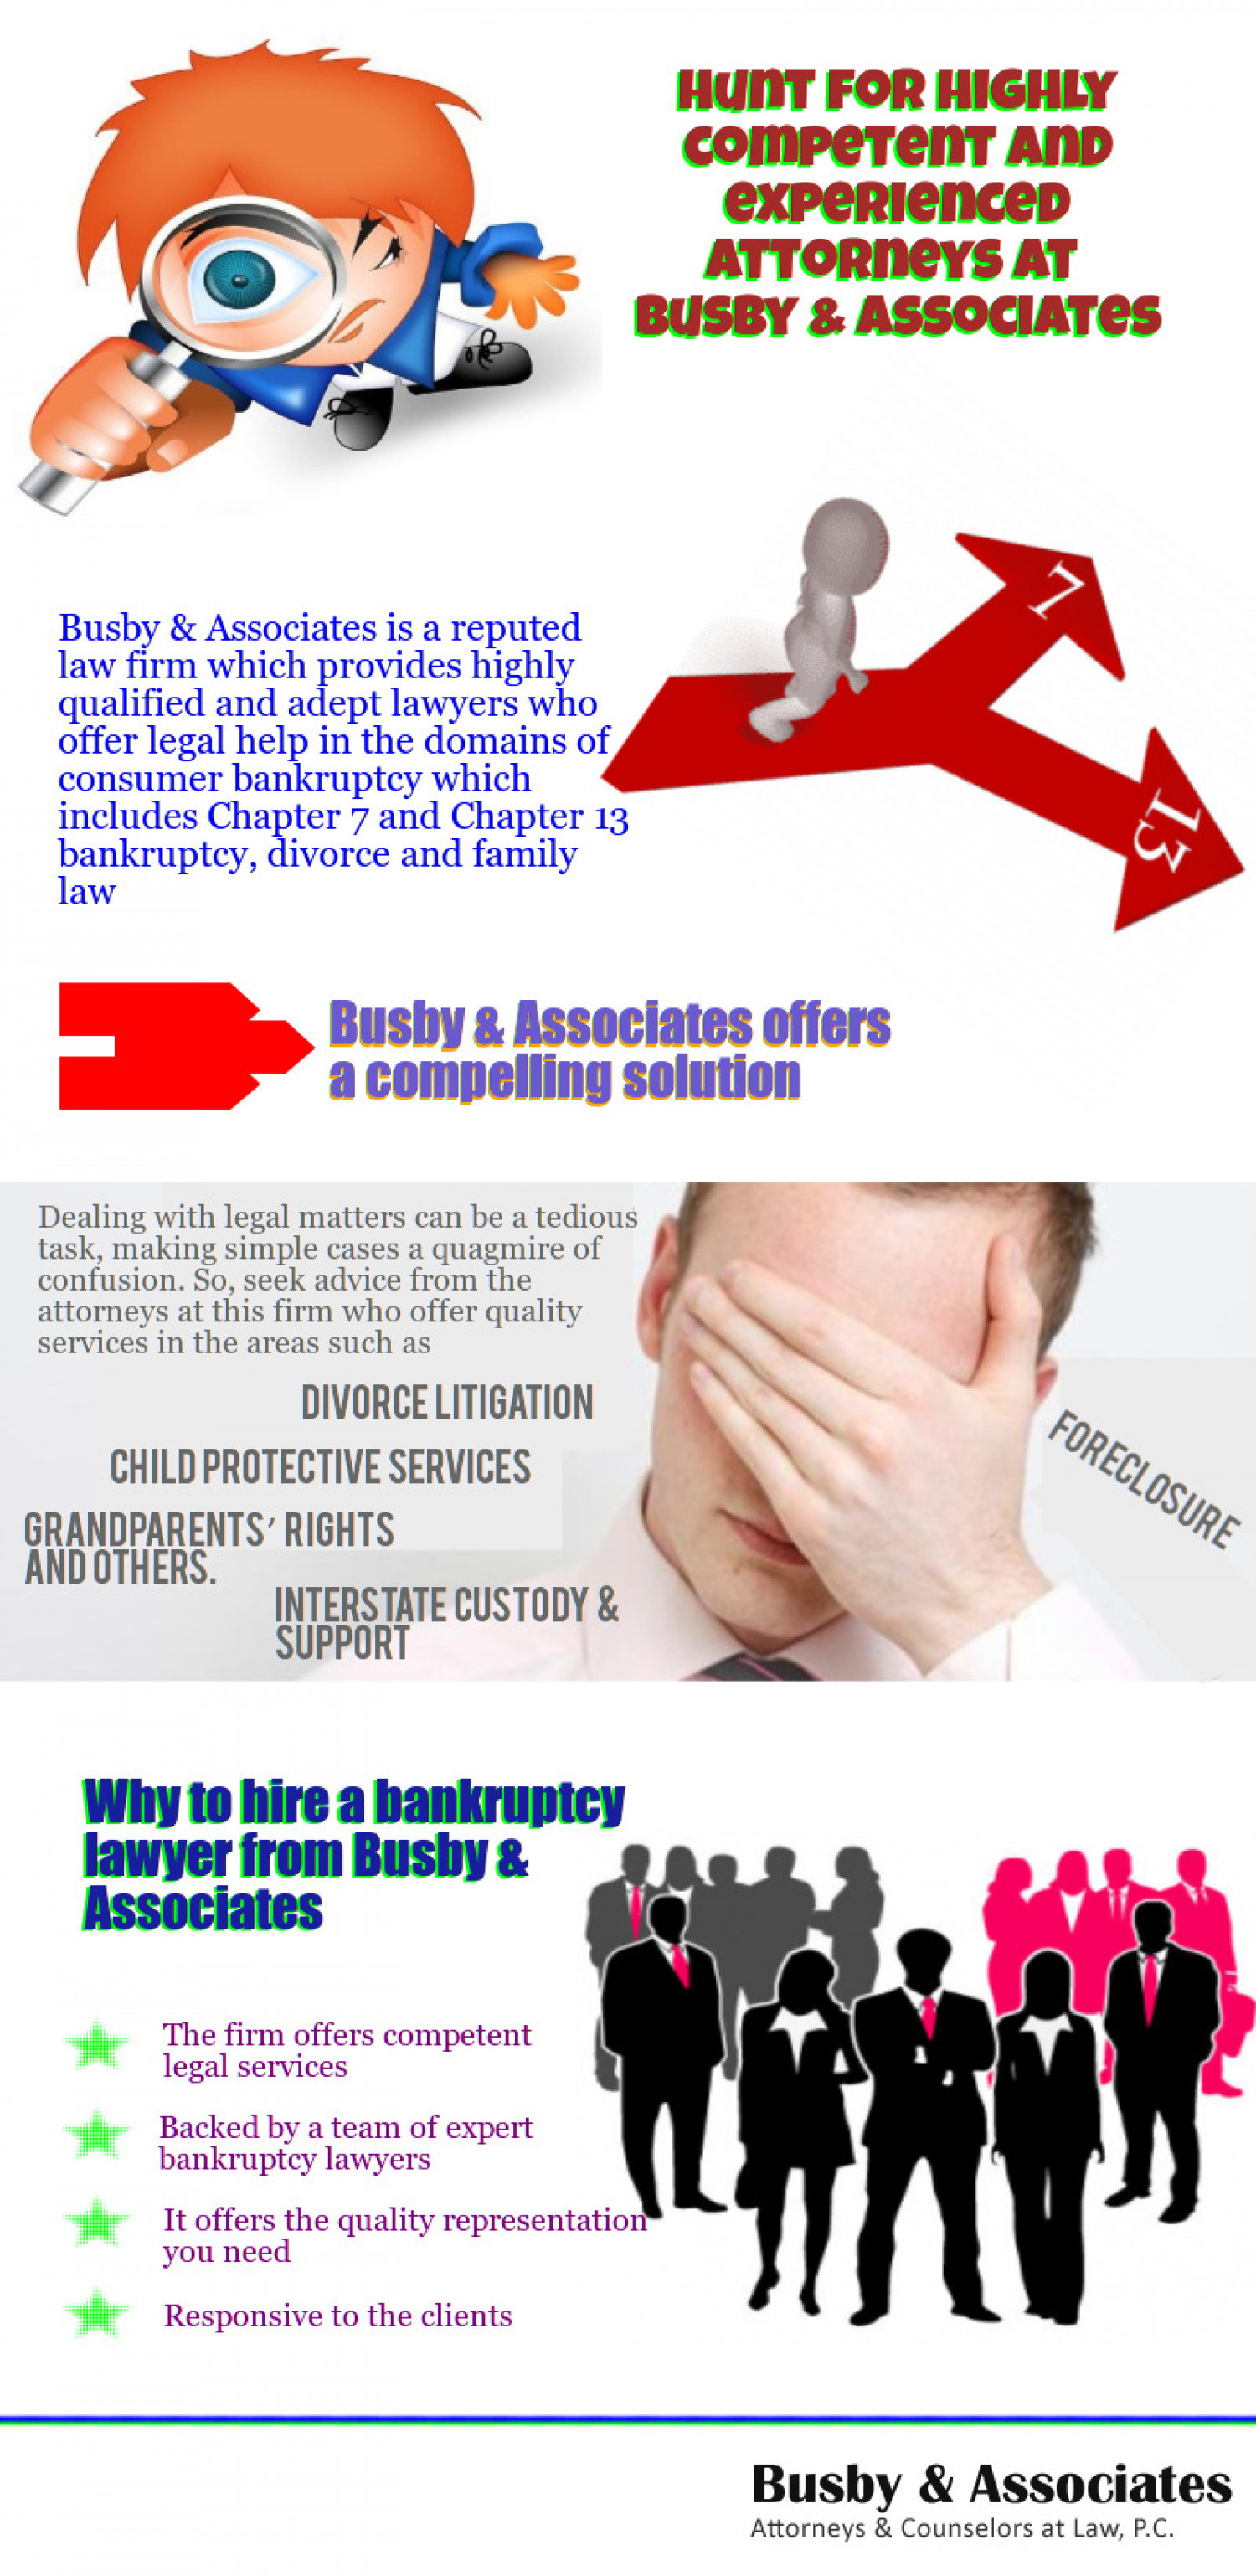 Hunt for highly competent and experienced attorneys at Busby & Associates Infographic